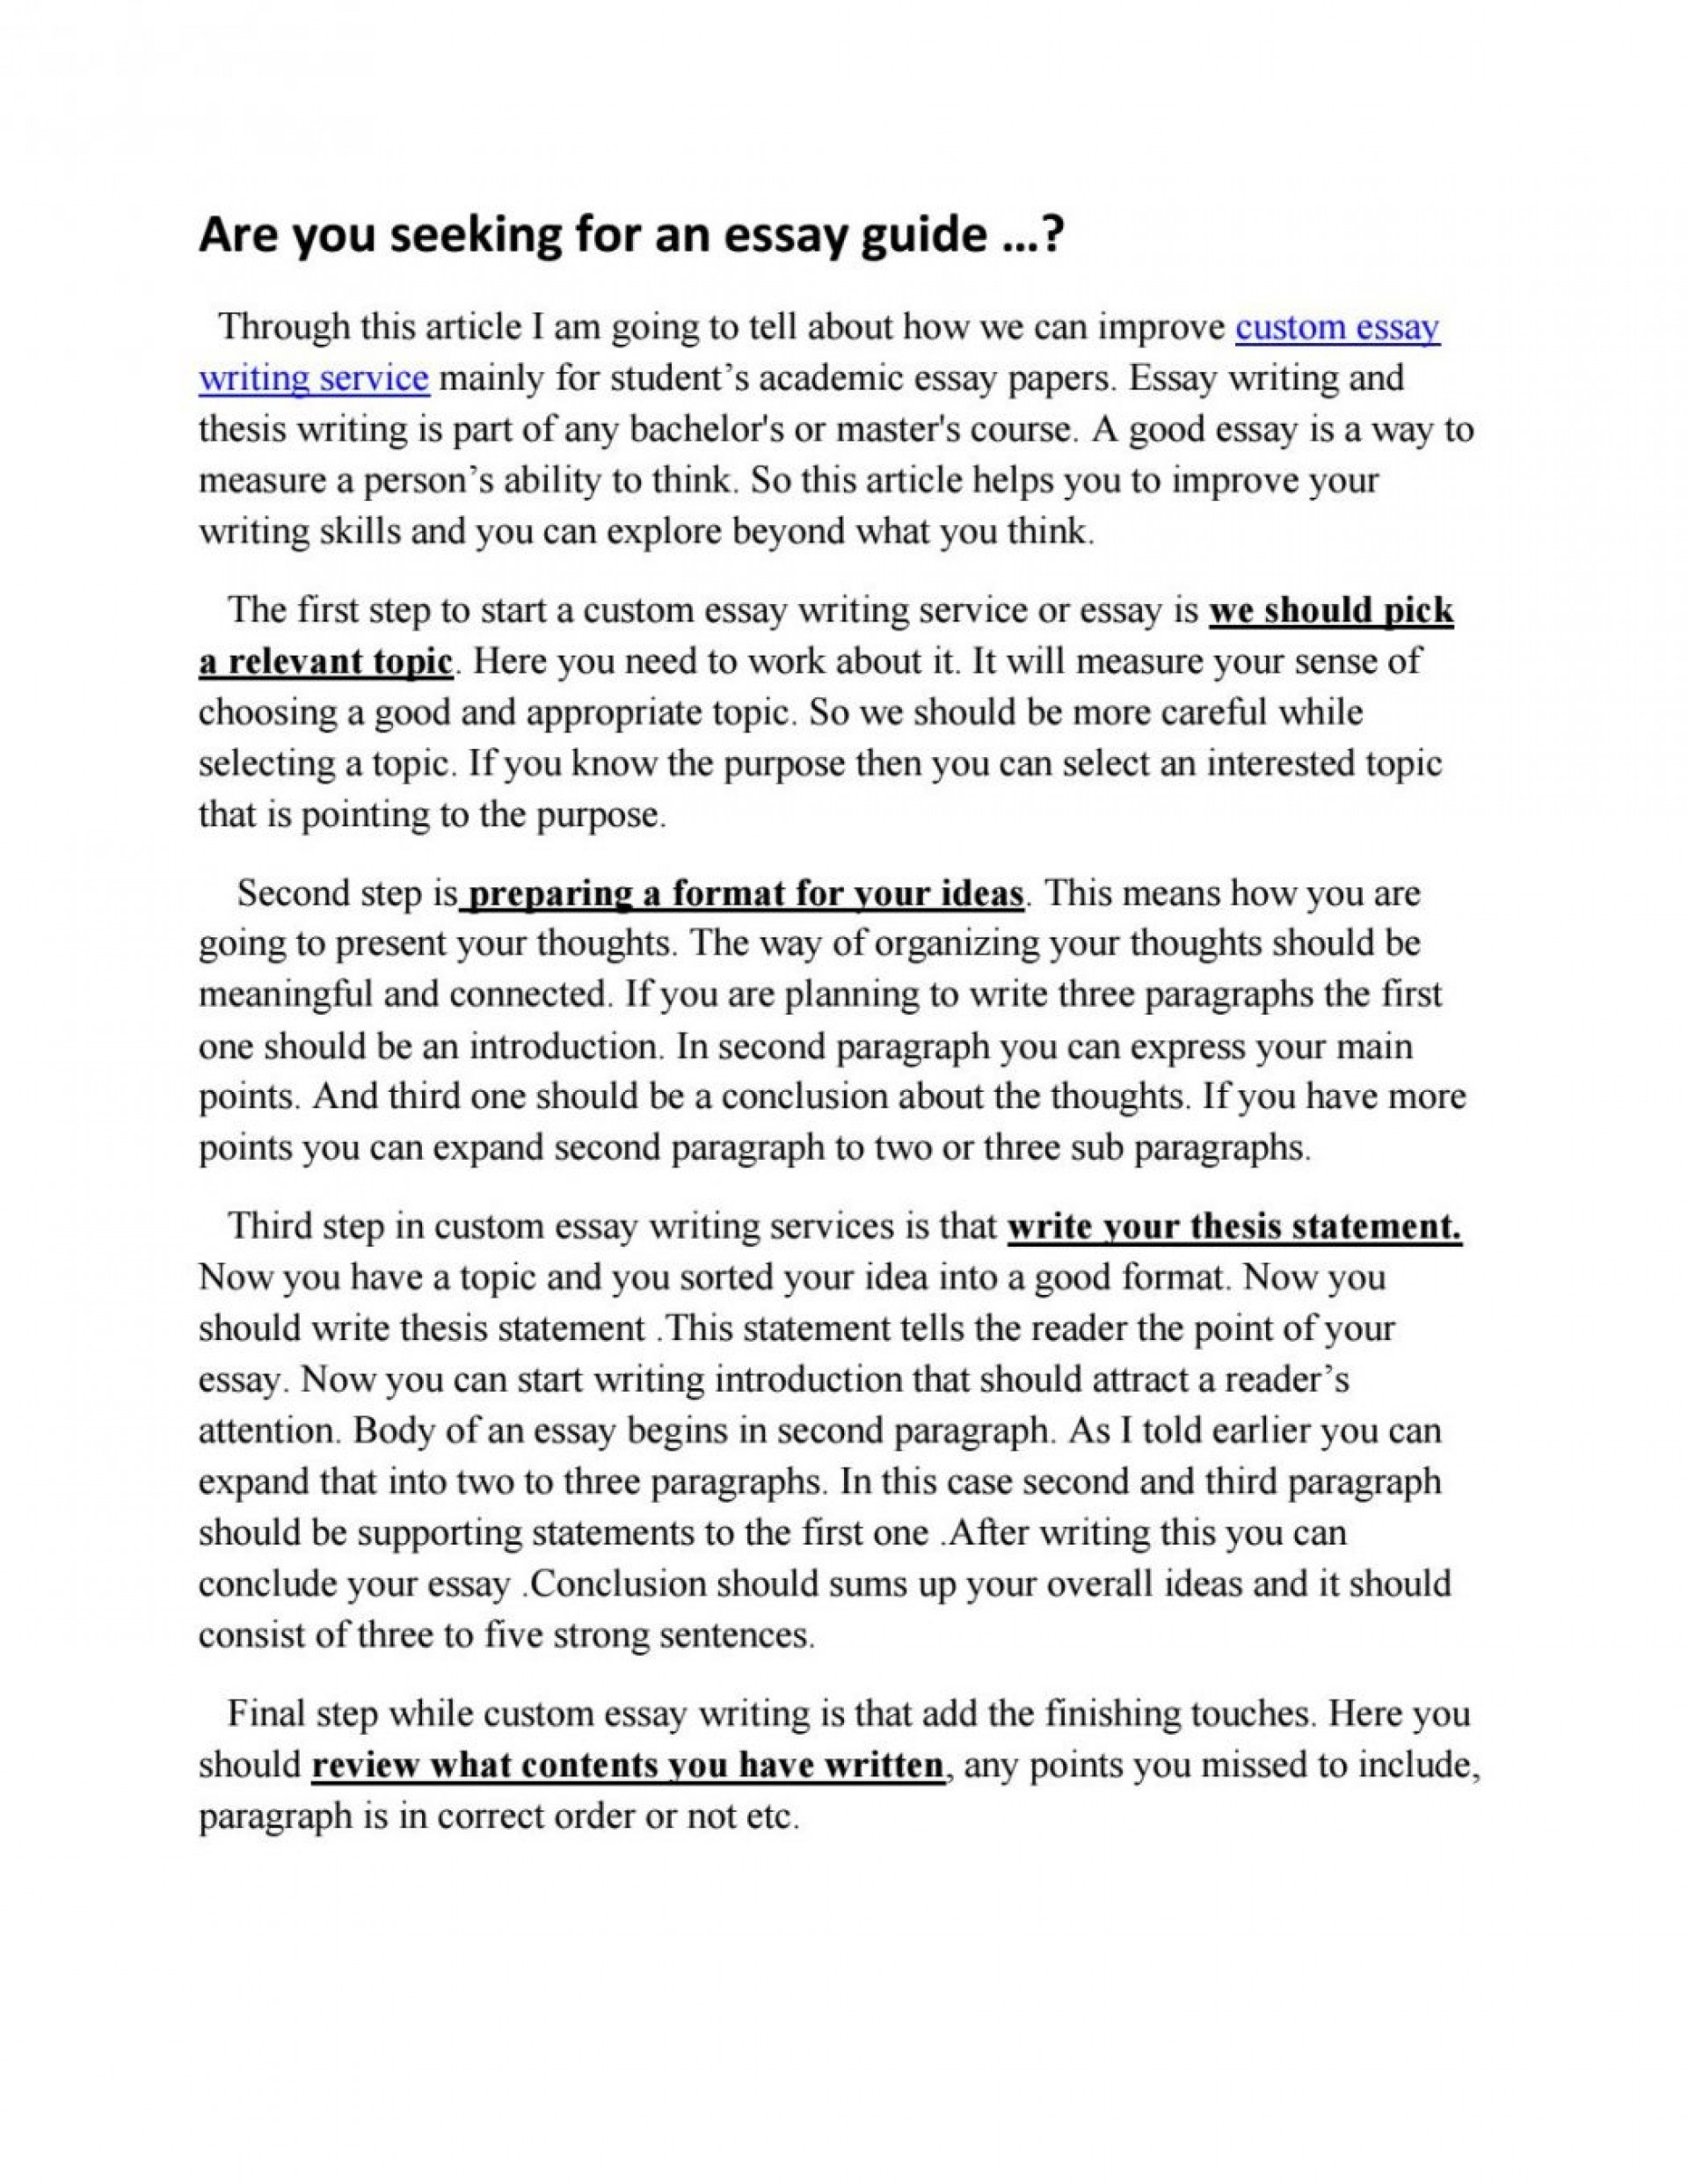 002 Good Writing Skill English Skills Essay Improving Online Improve